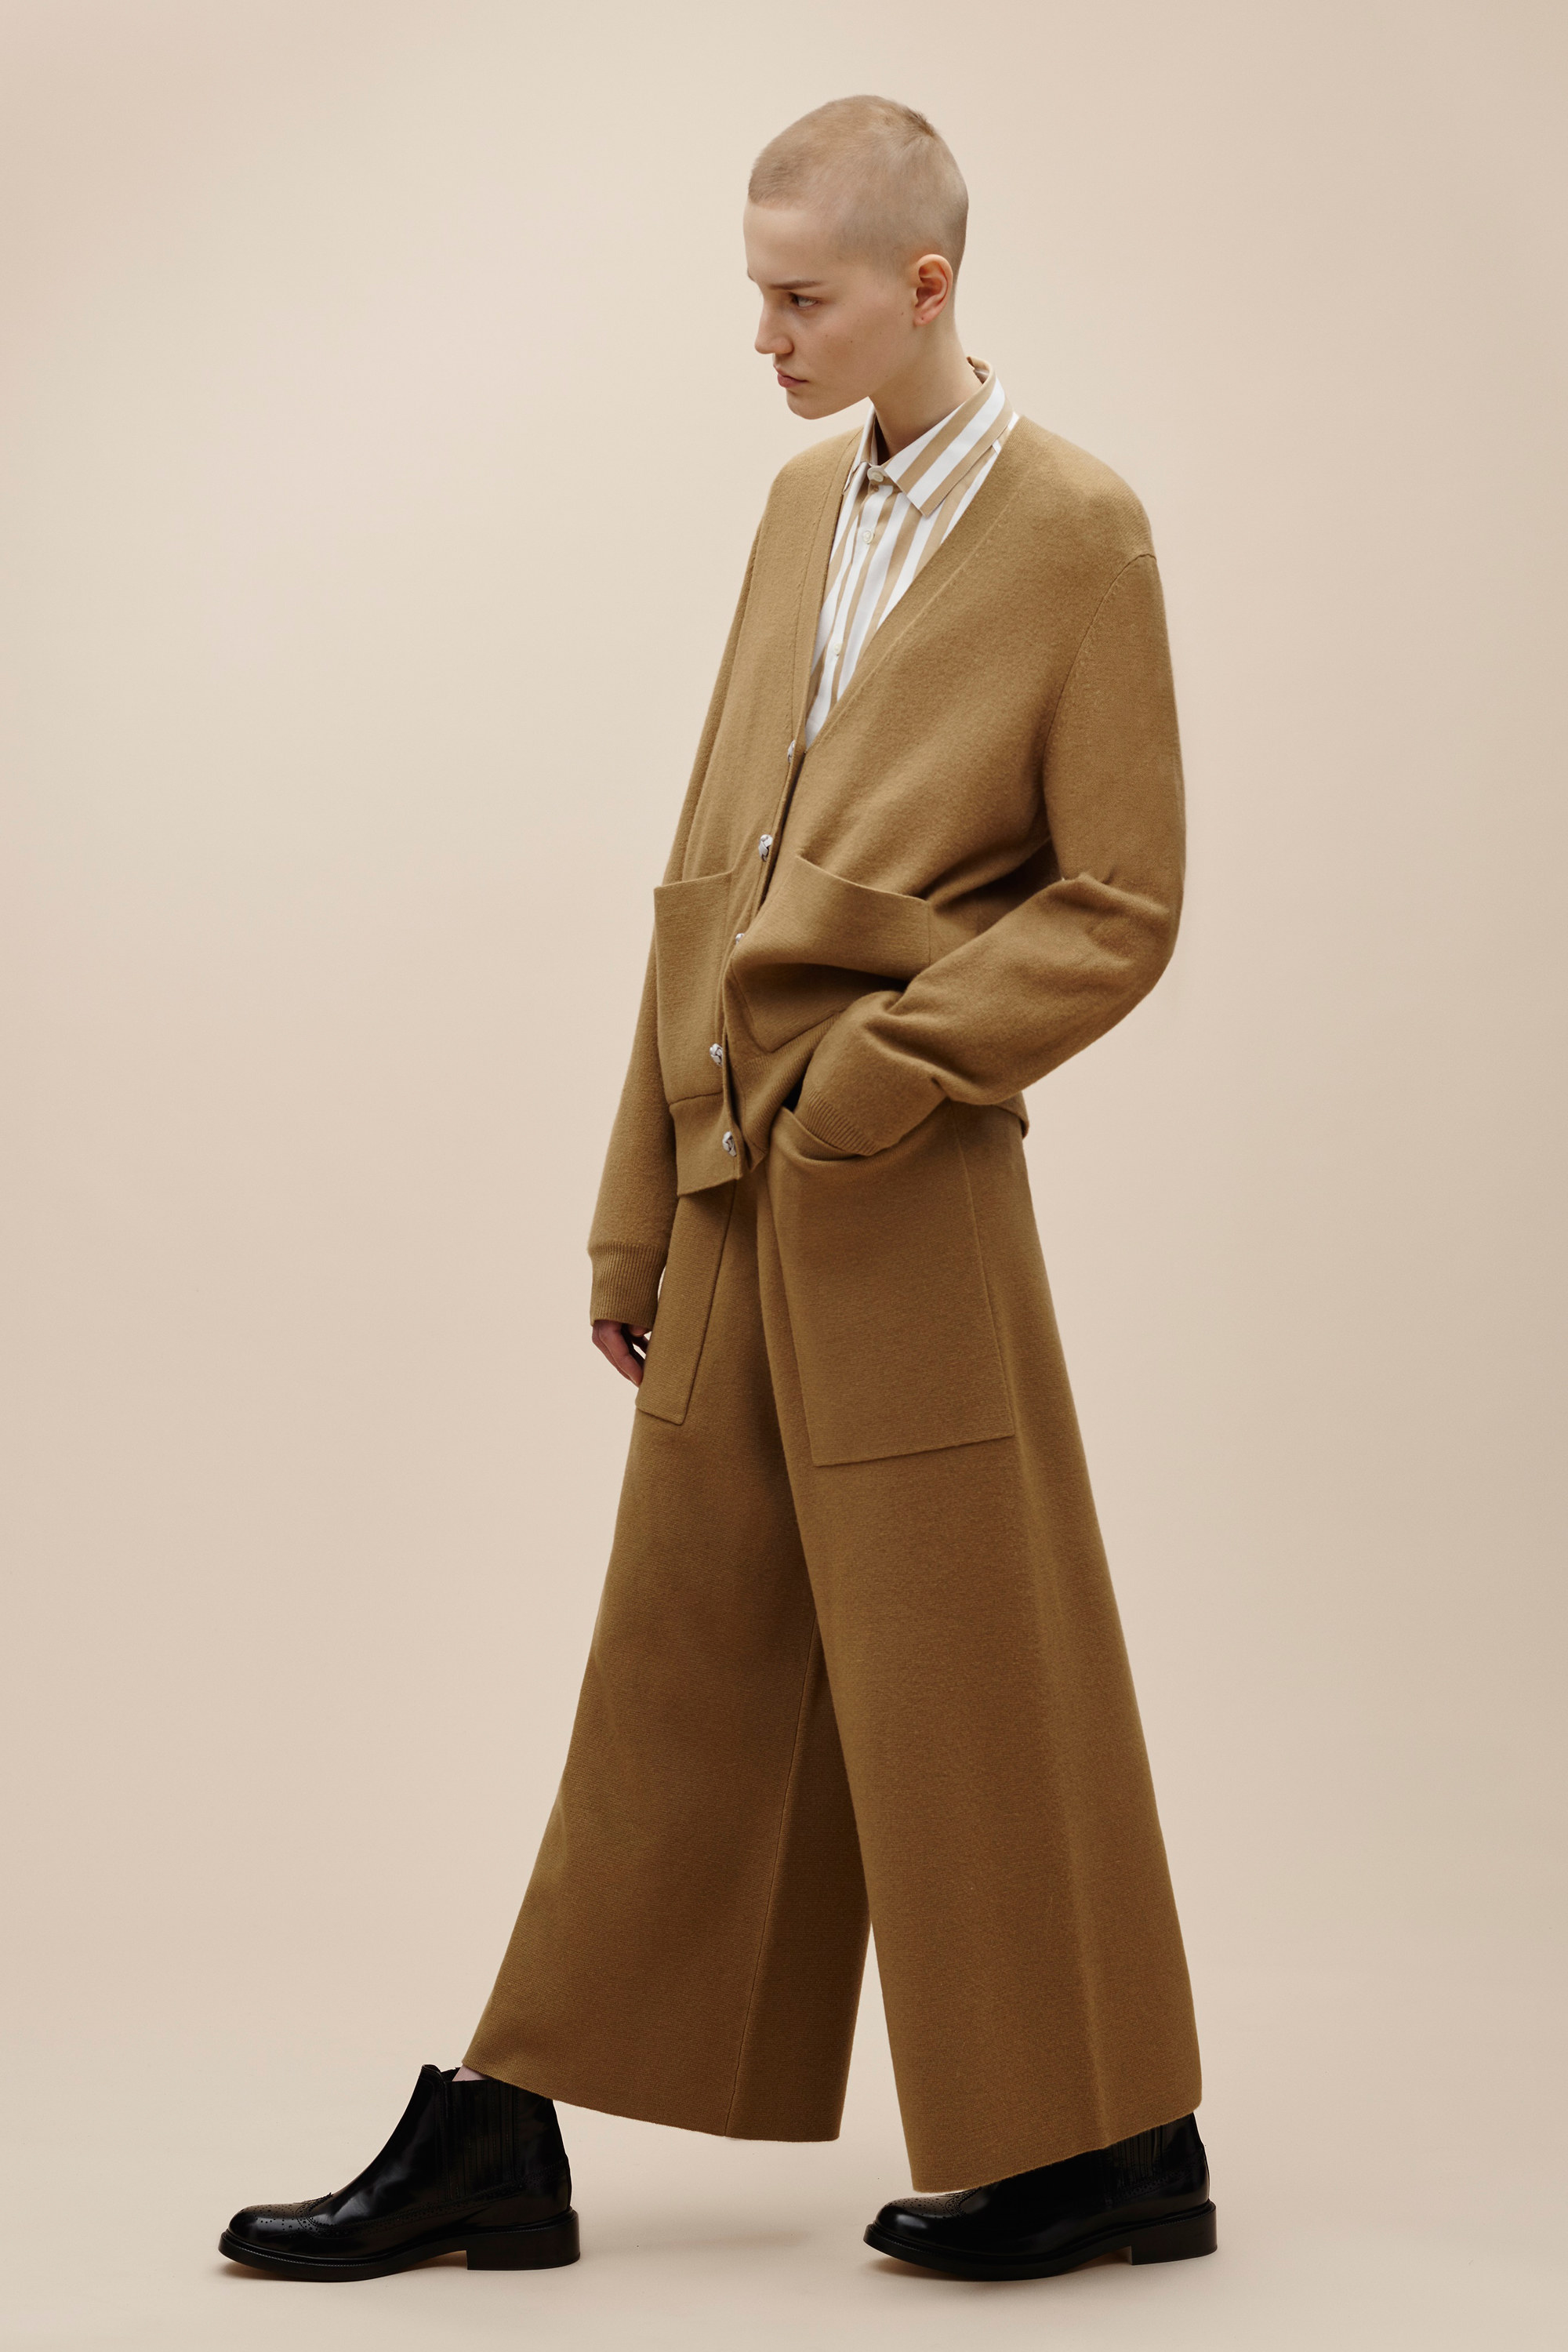 joseph-pre-fall-2016-lookbook-03